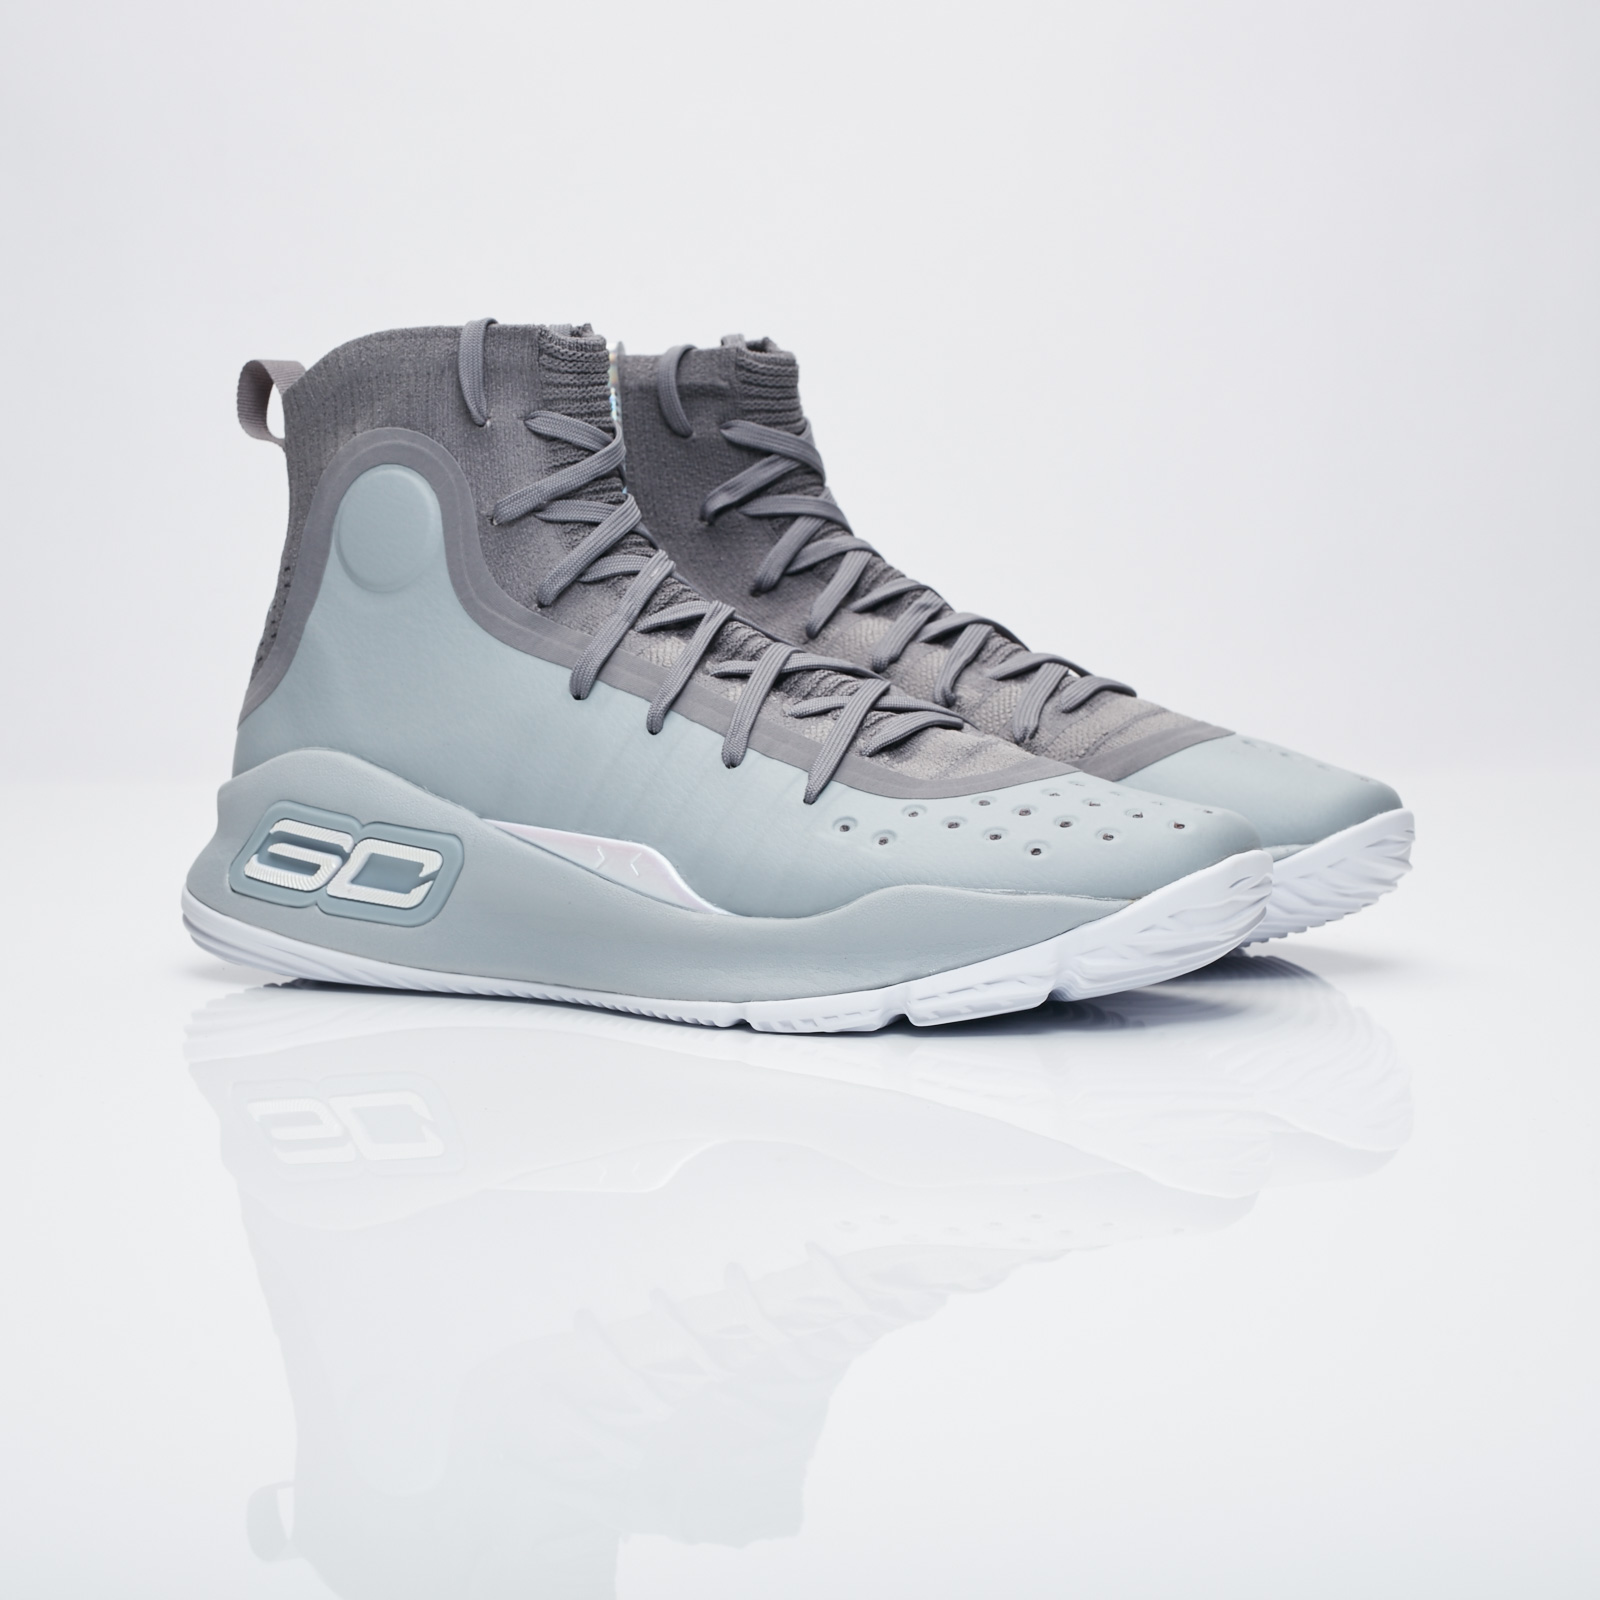 00c91111644b Under Armour Curry 4 - 1298306-107 - Sneakersnstuff